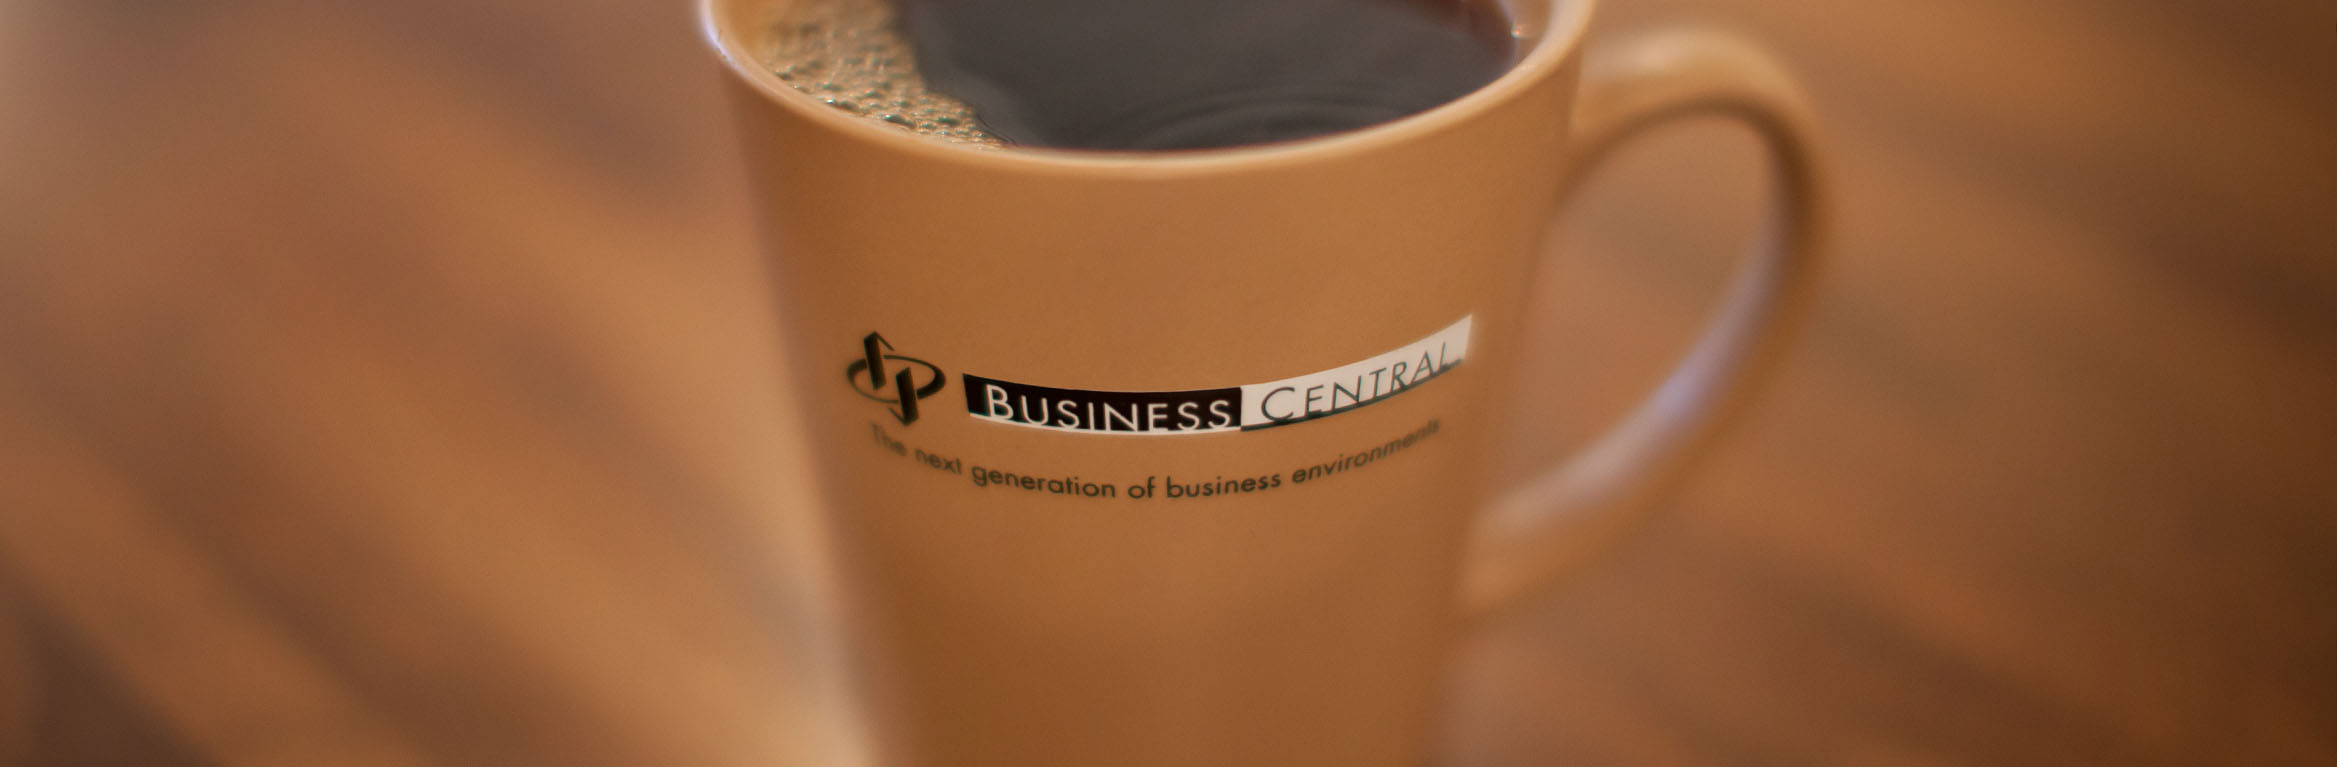 Business Central - Generation of business environment